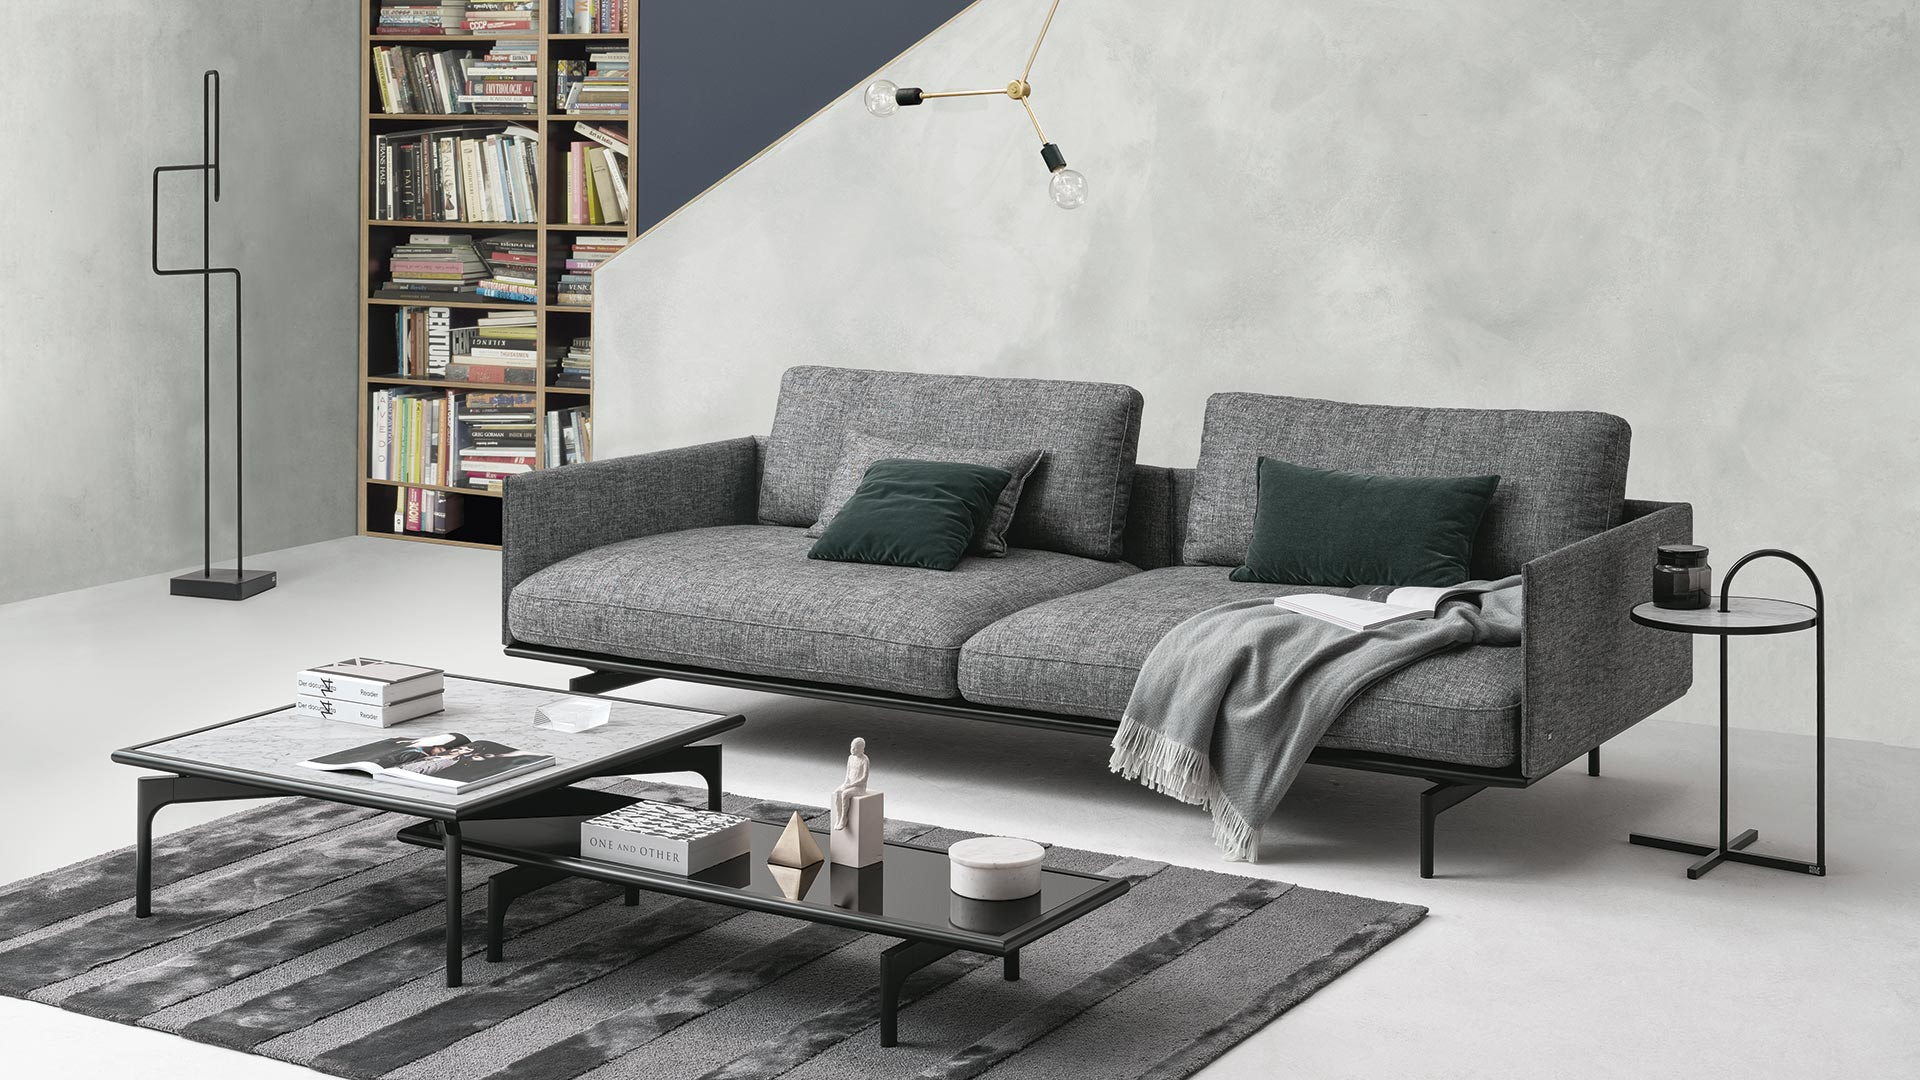 Rolf Benz Sofa / Couch LIV